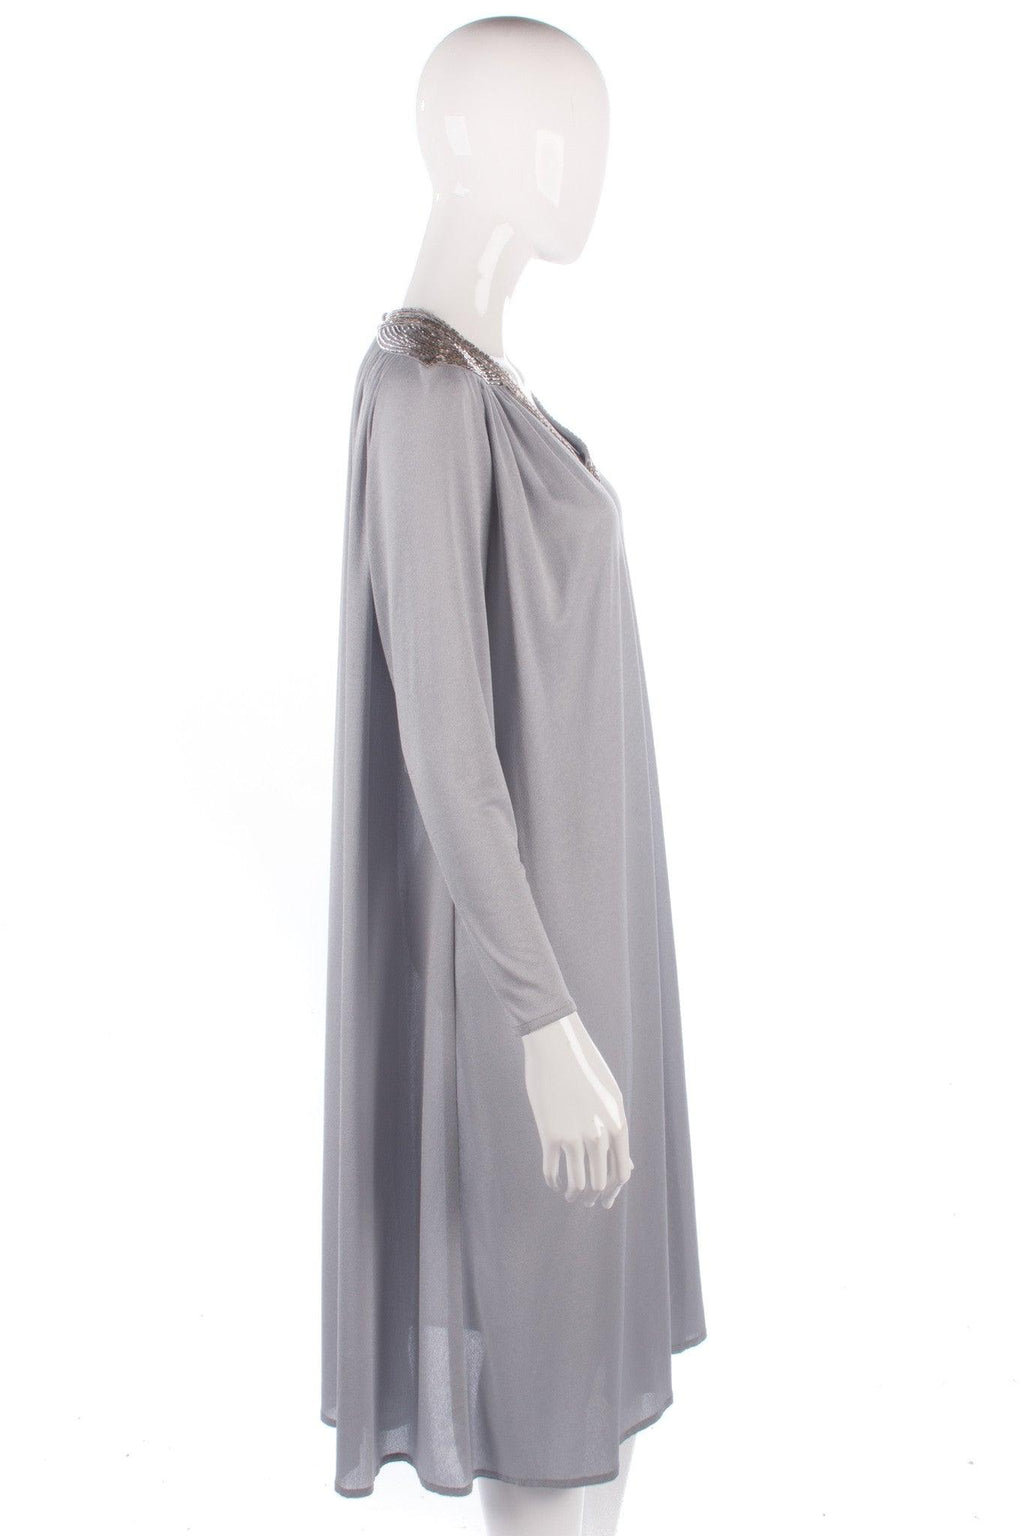 Grey vintage light jersey dress with beaded detail size M/L side